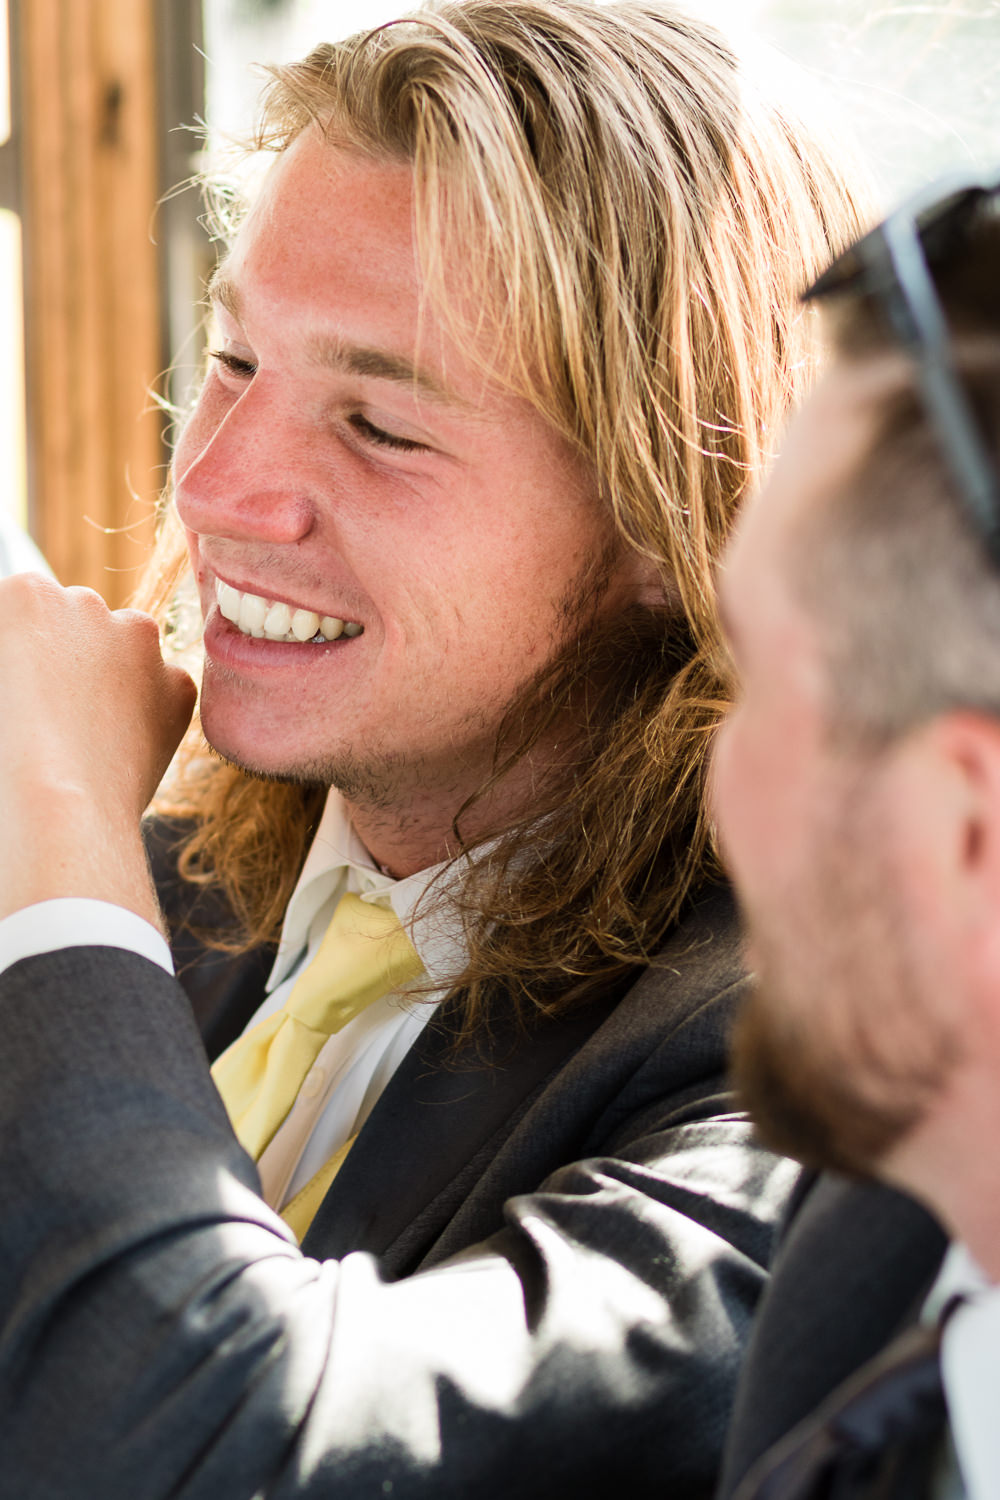 billings-montana-swift-river-ranch-wedding-reception-groomsmen-on-tipsey-trolley.jpg